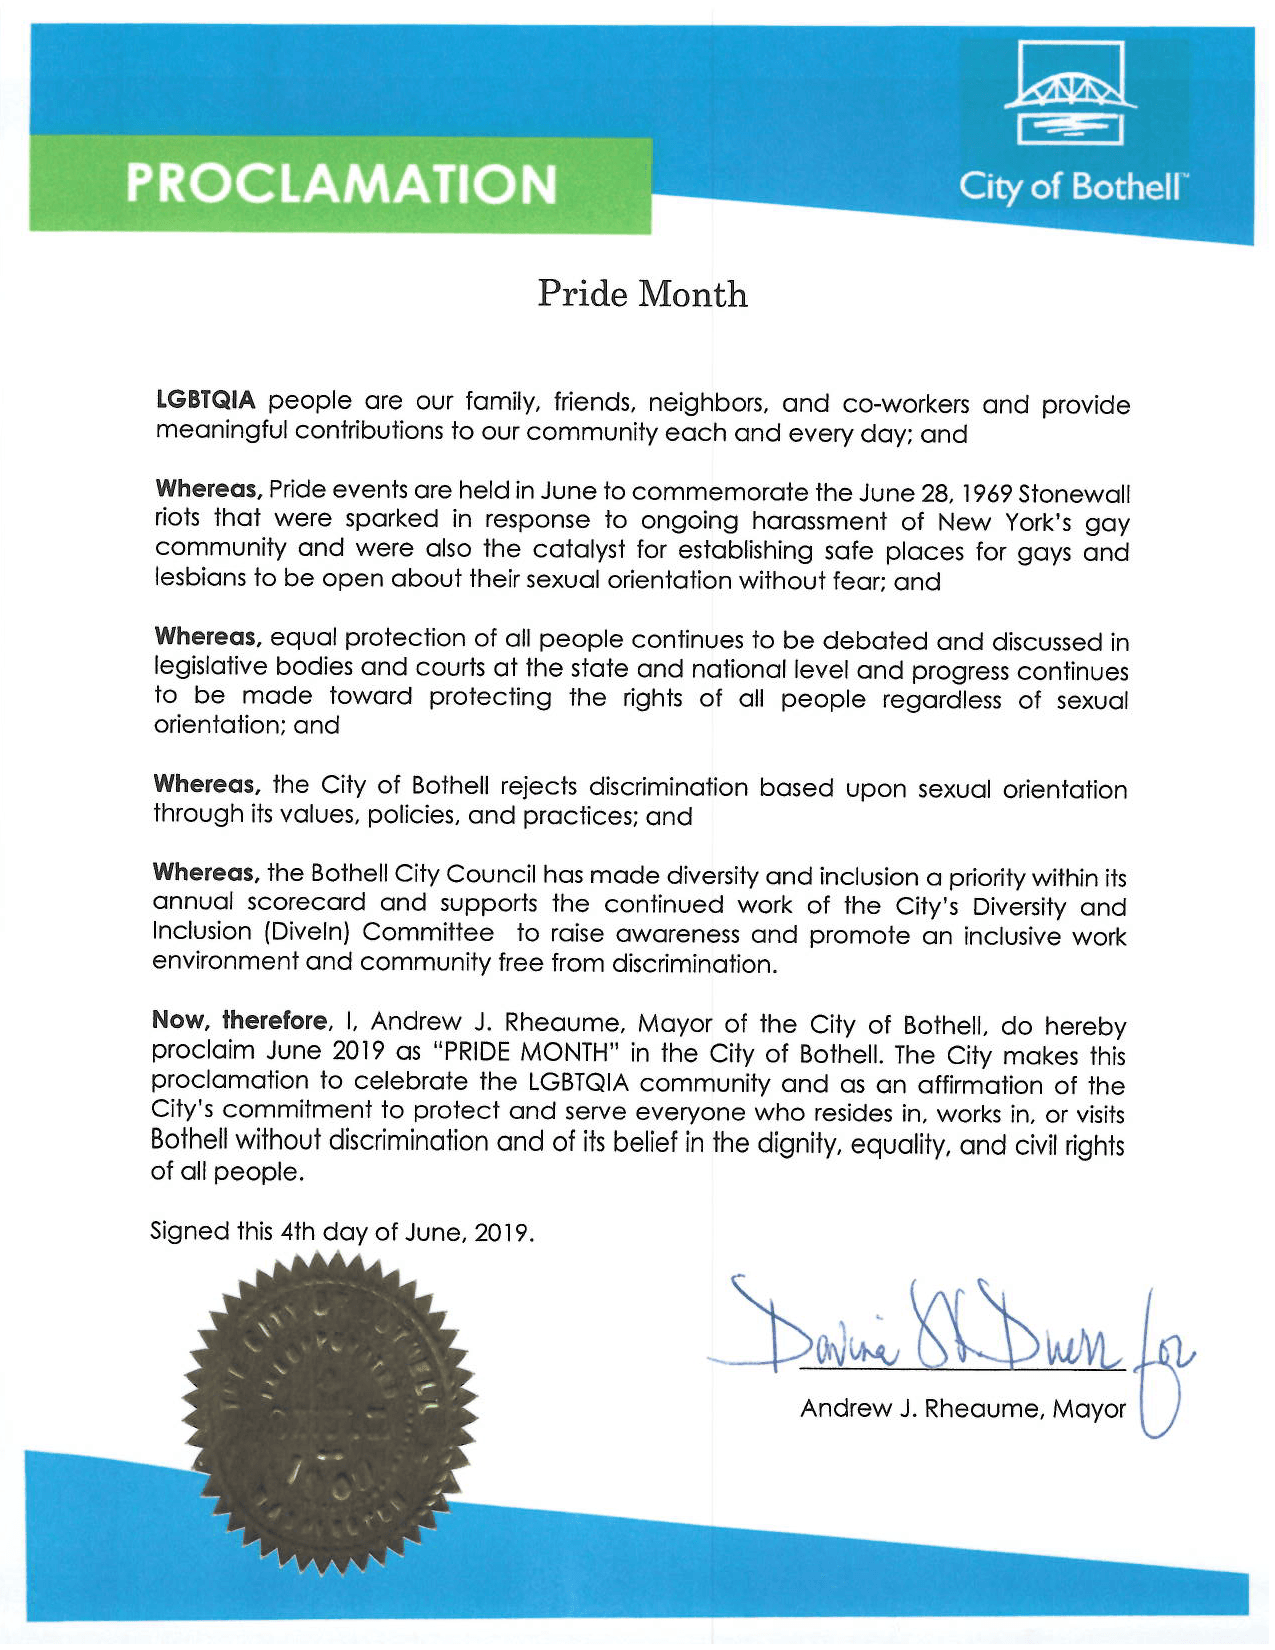 Image of Pride Month Proclamation